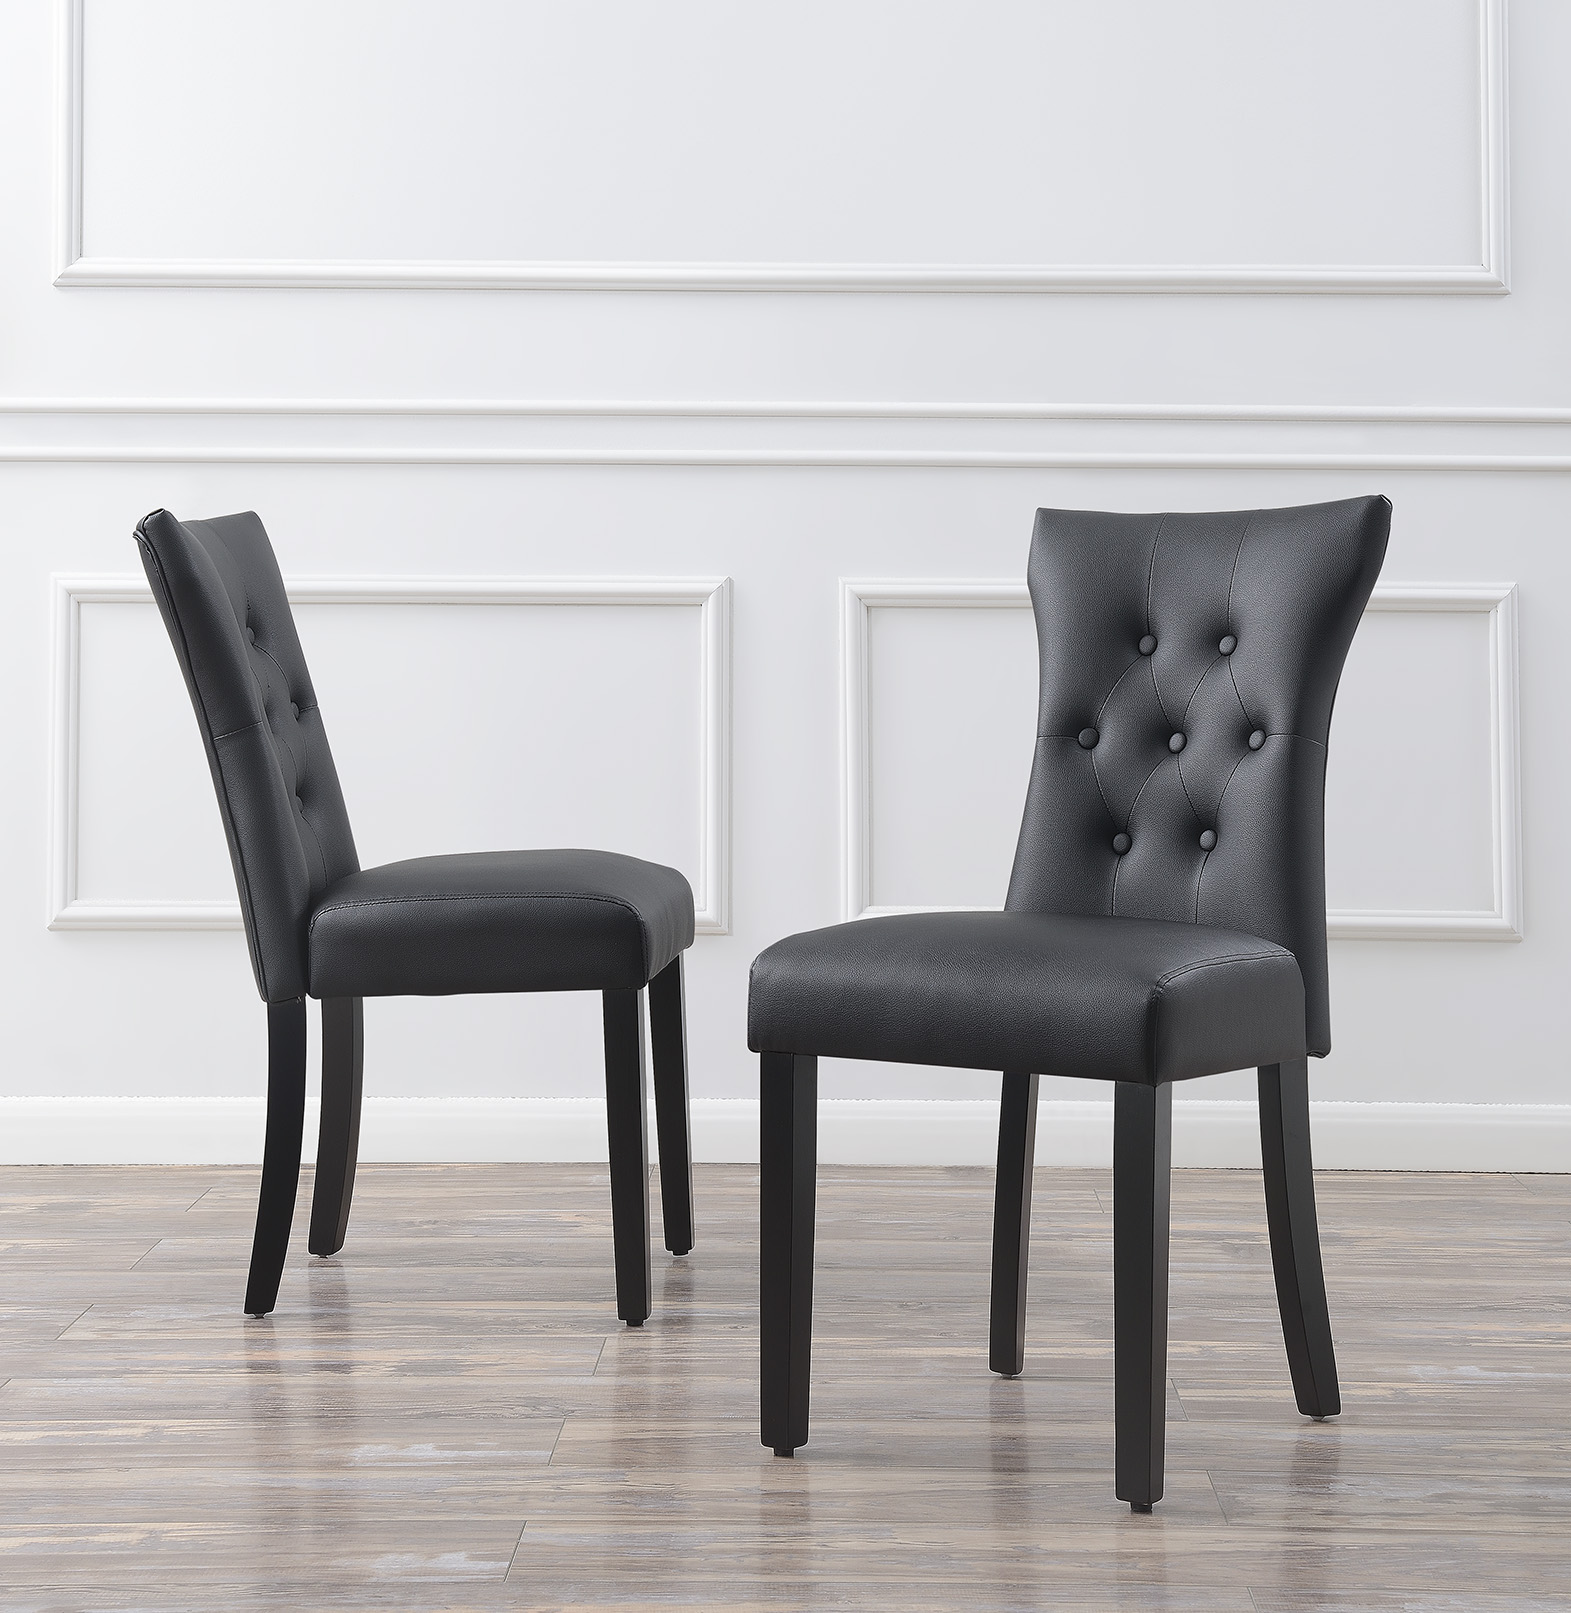 set of 2 modern dining chair faux leather nailhead upholstered black white ebay. Black Bedroom Furniture Sets. Home Design Ideas